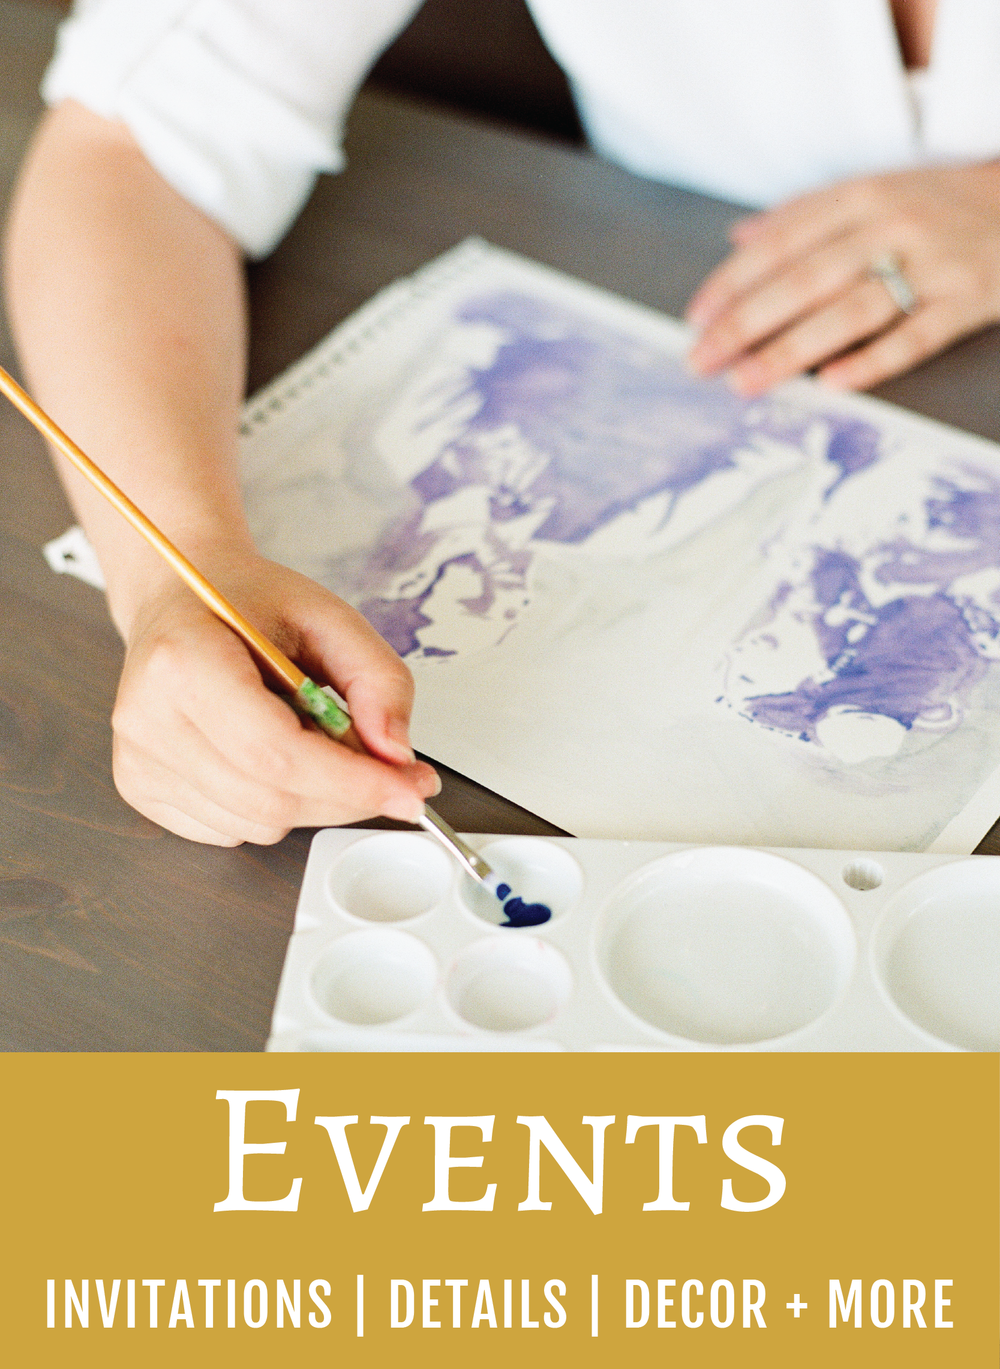 Greatest Story Events: Invitations, Details, Decor and More To Celebrate Someone or Something Special